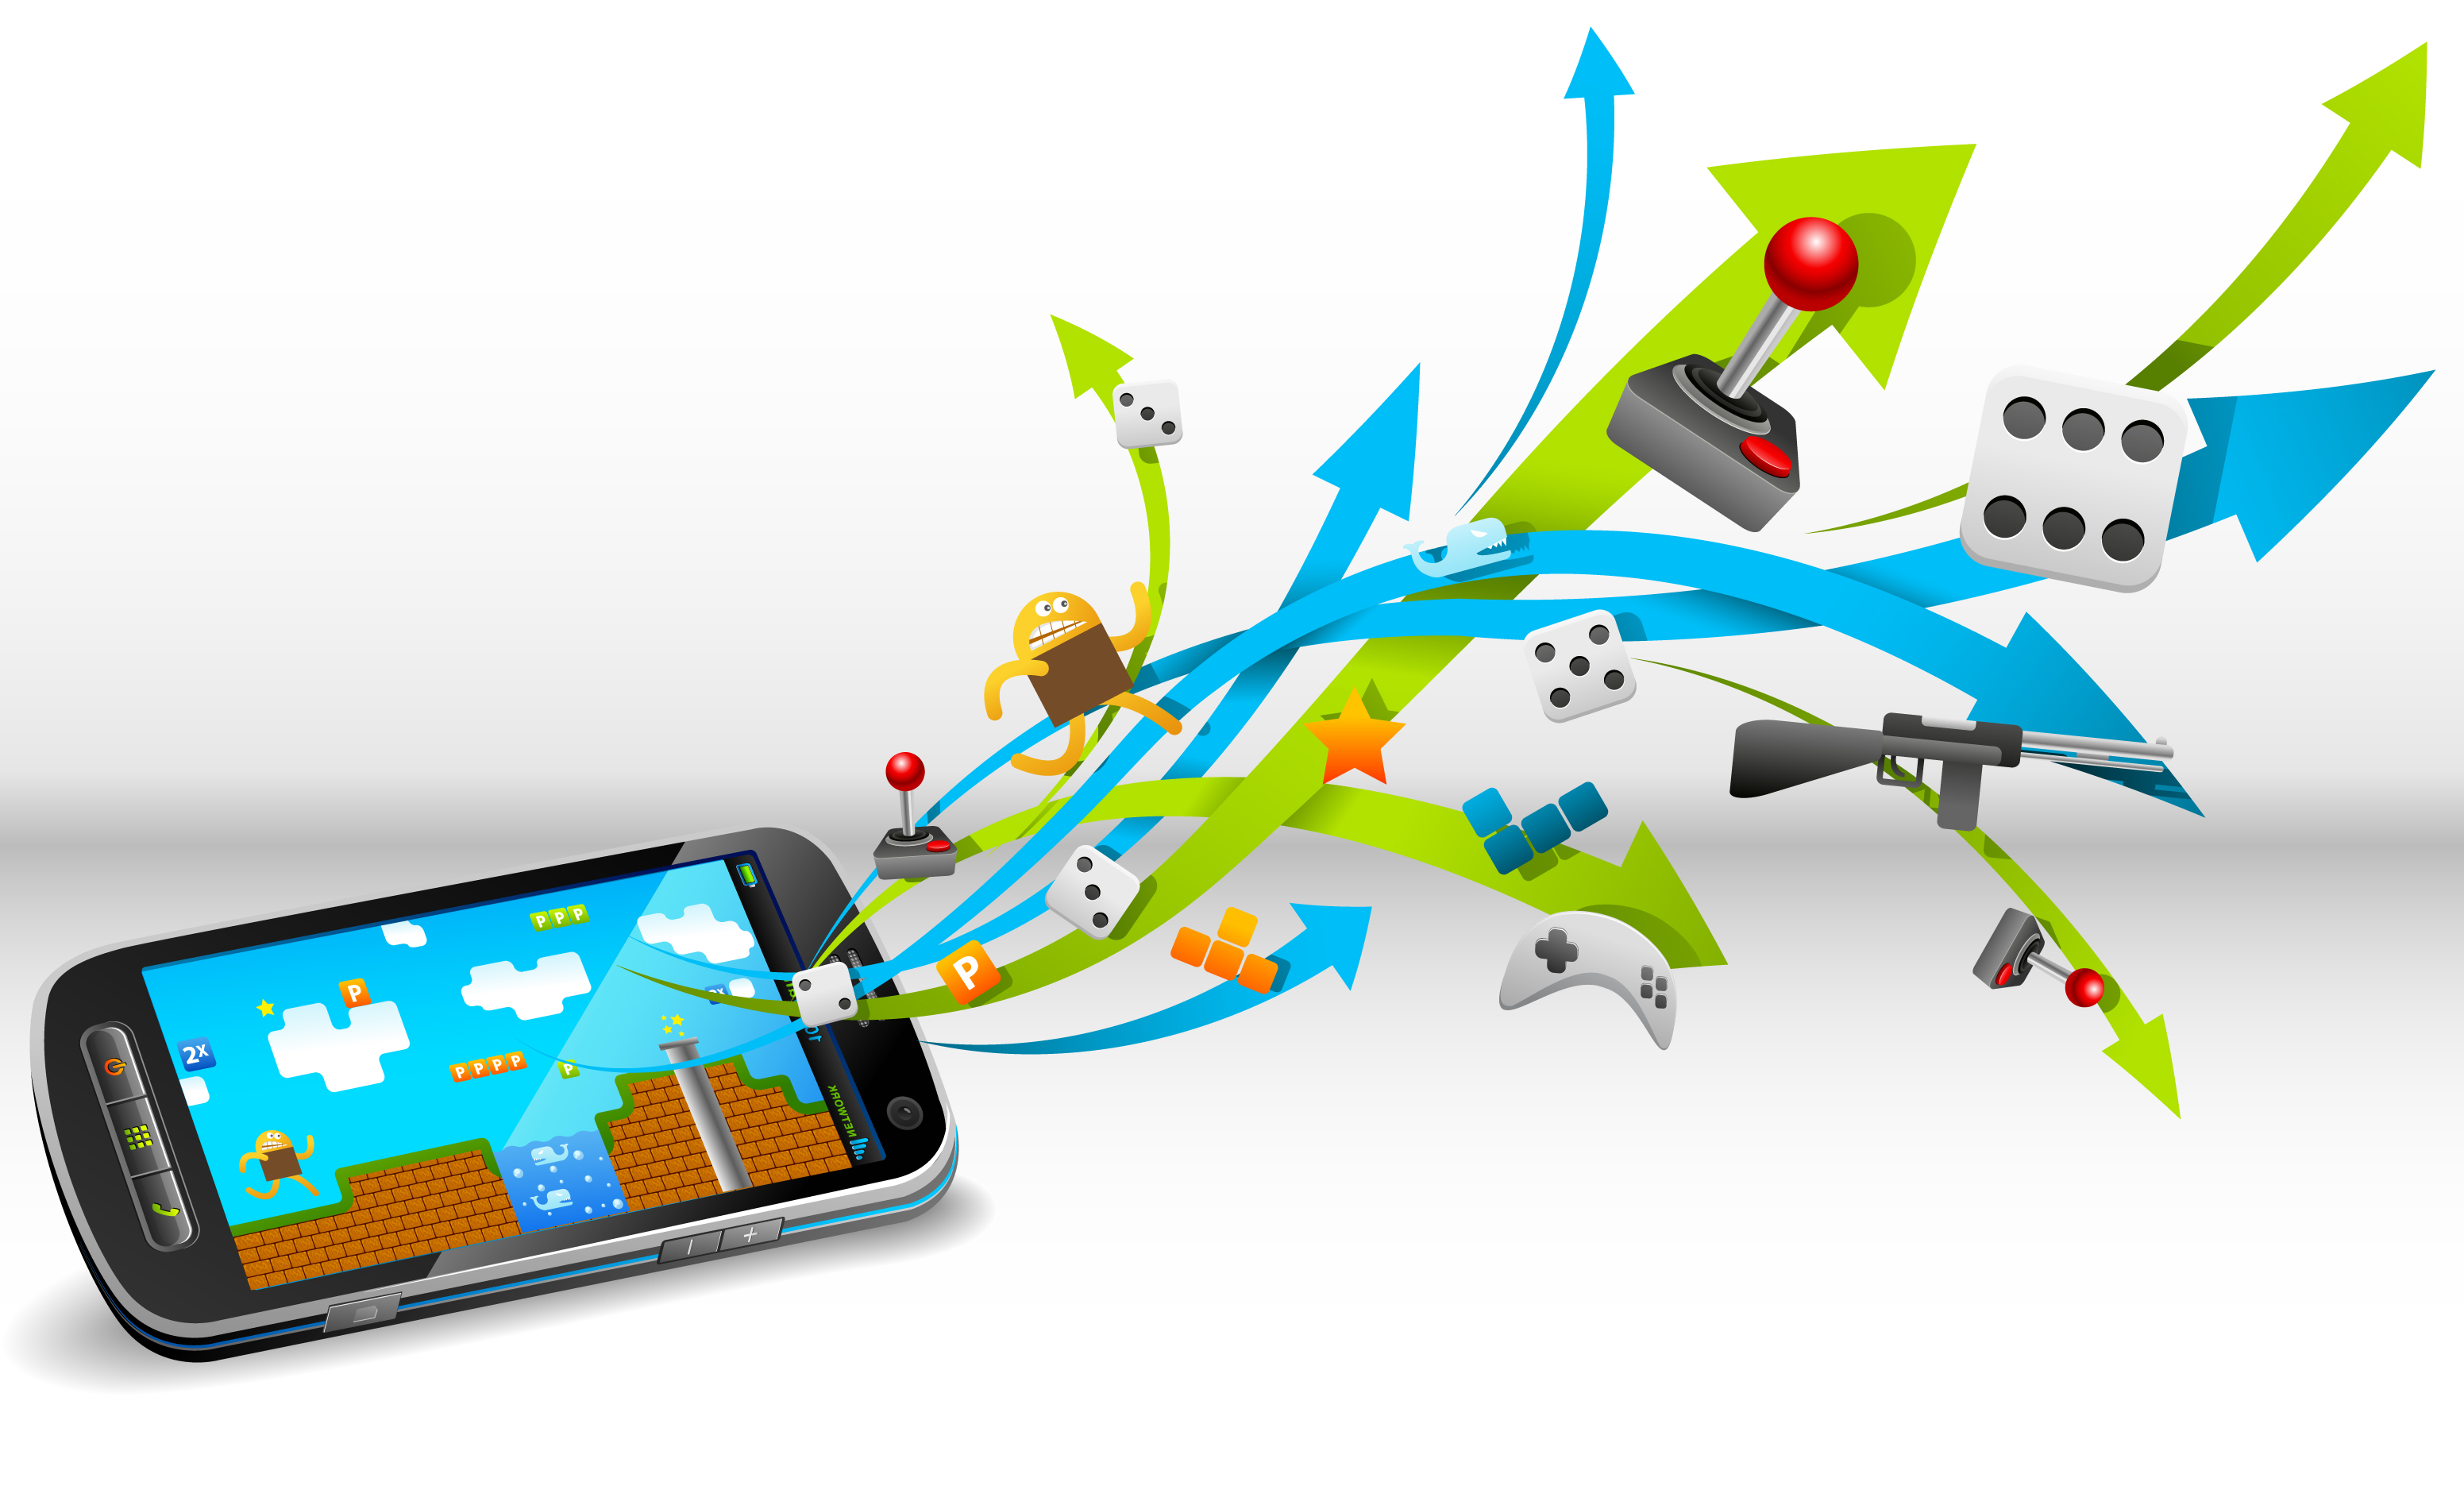 The Ultimate Guide To Mobile App & Game Marketing